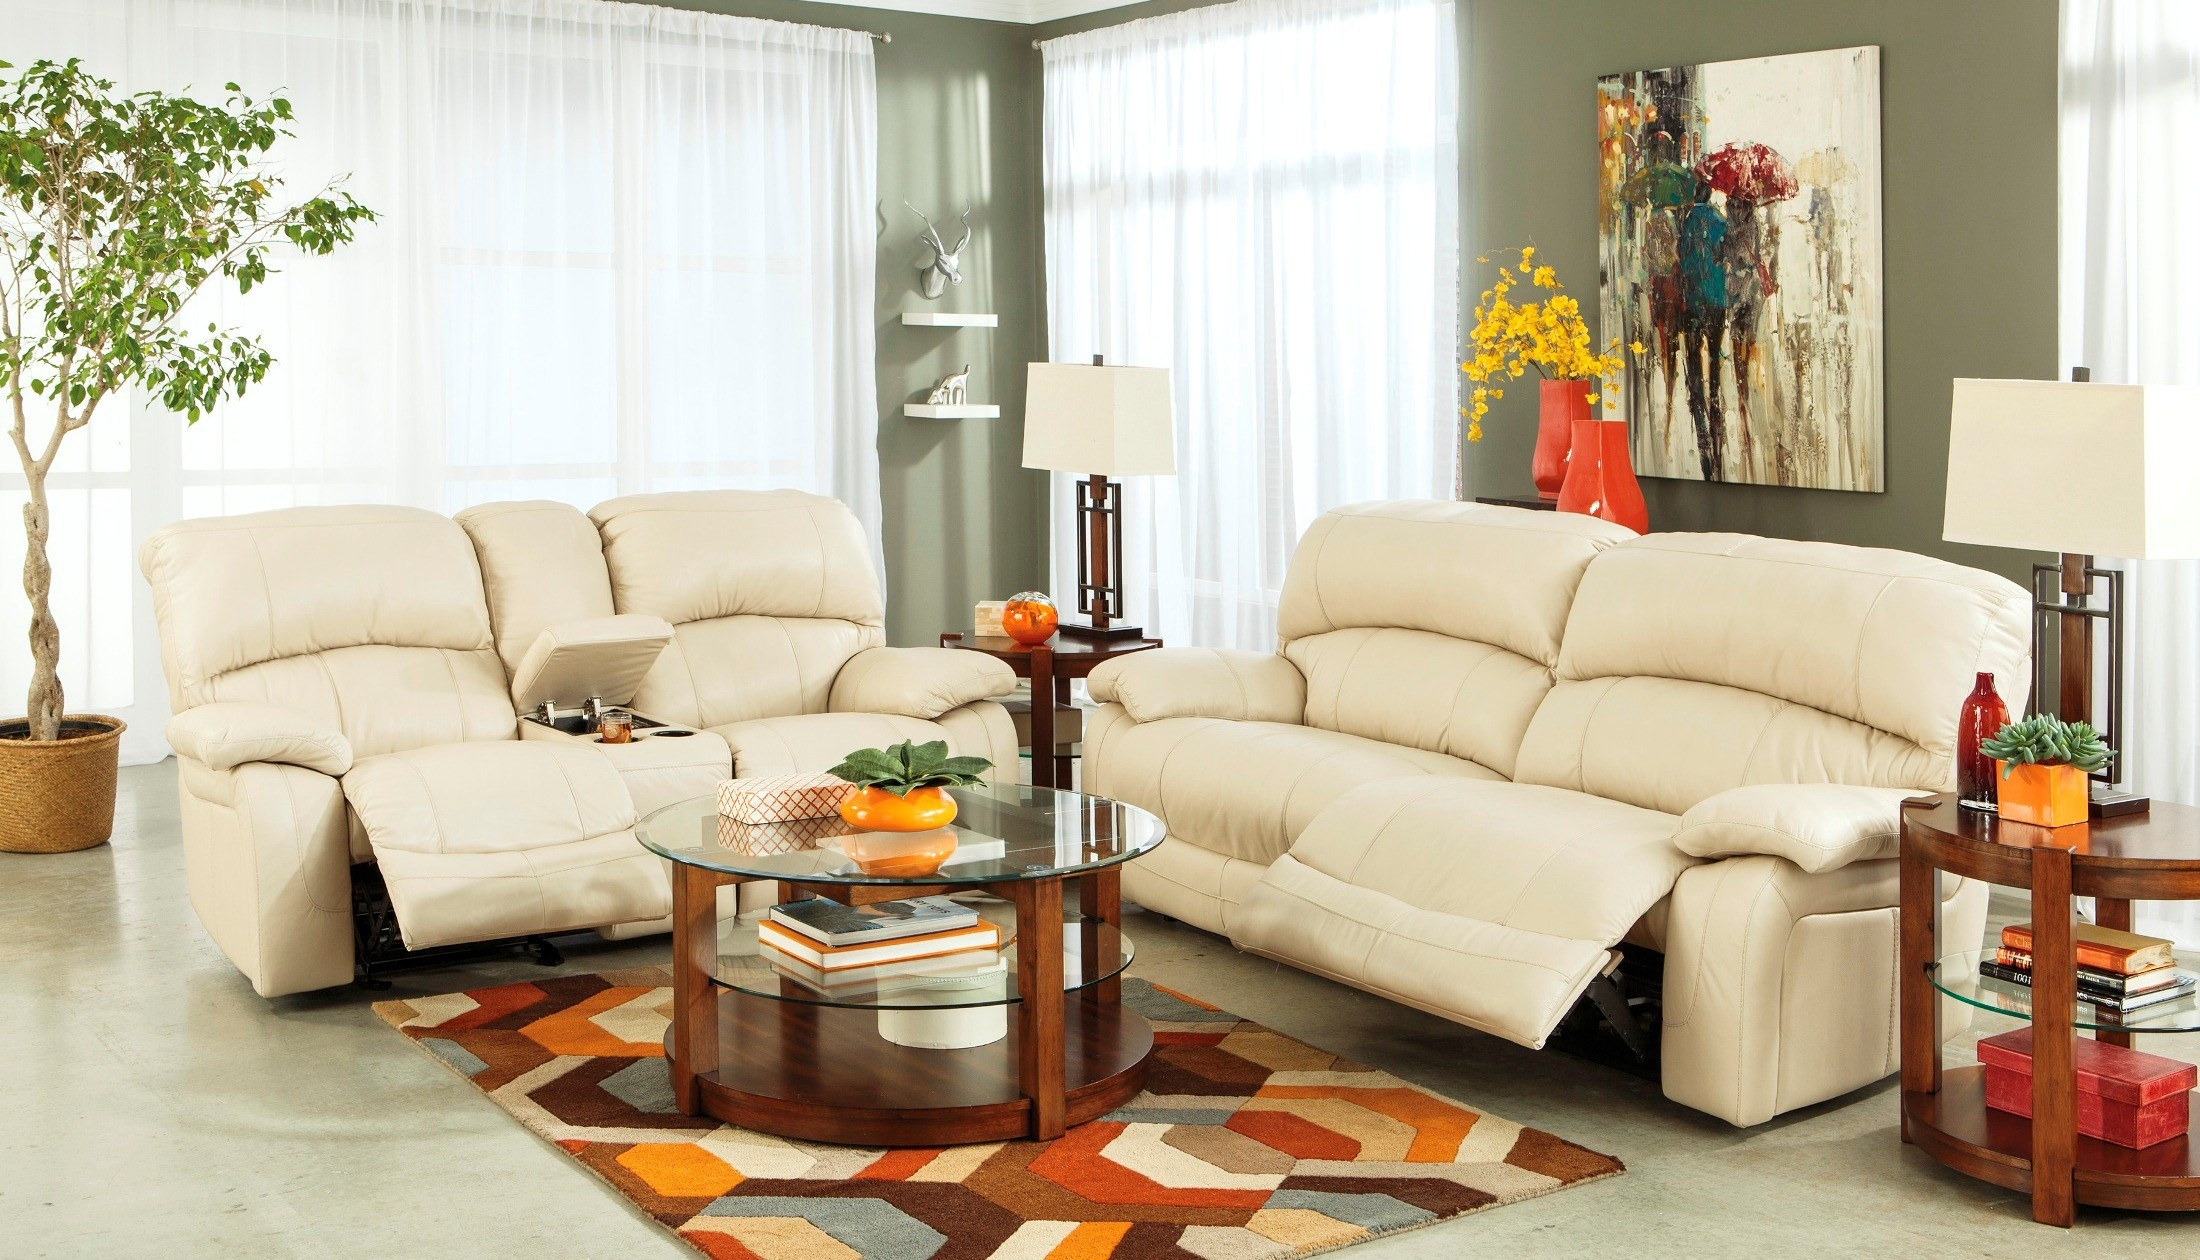 Damacio cream power reclining living room set from ashley Reclining living room furniture